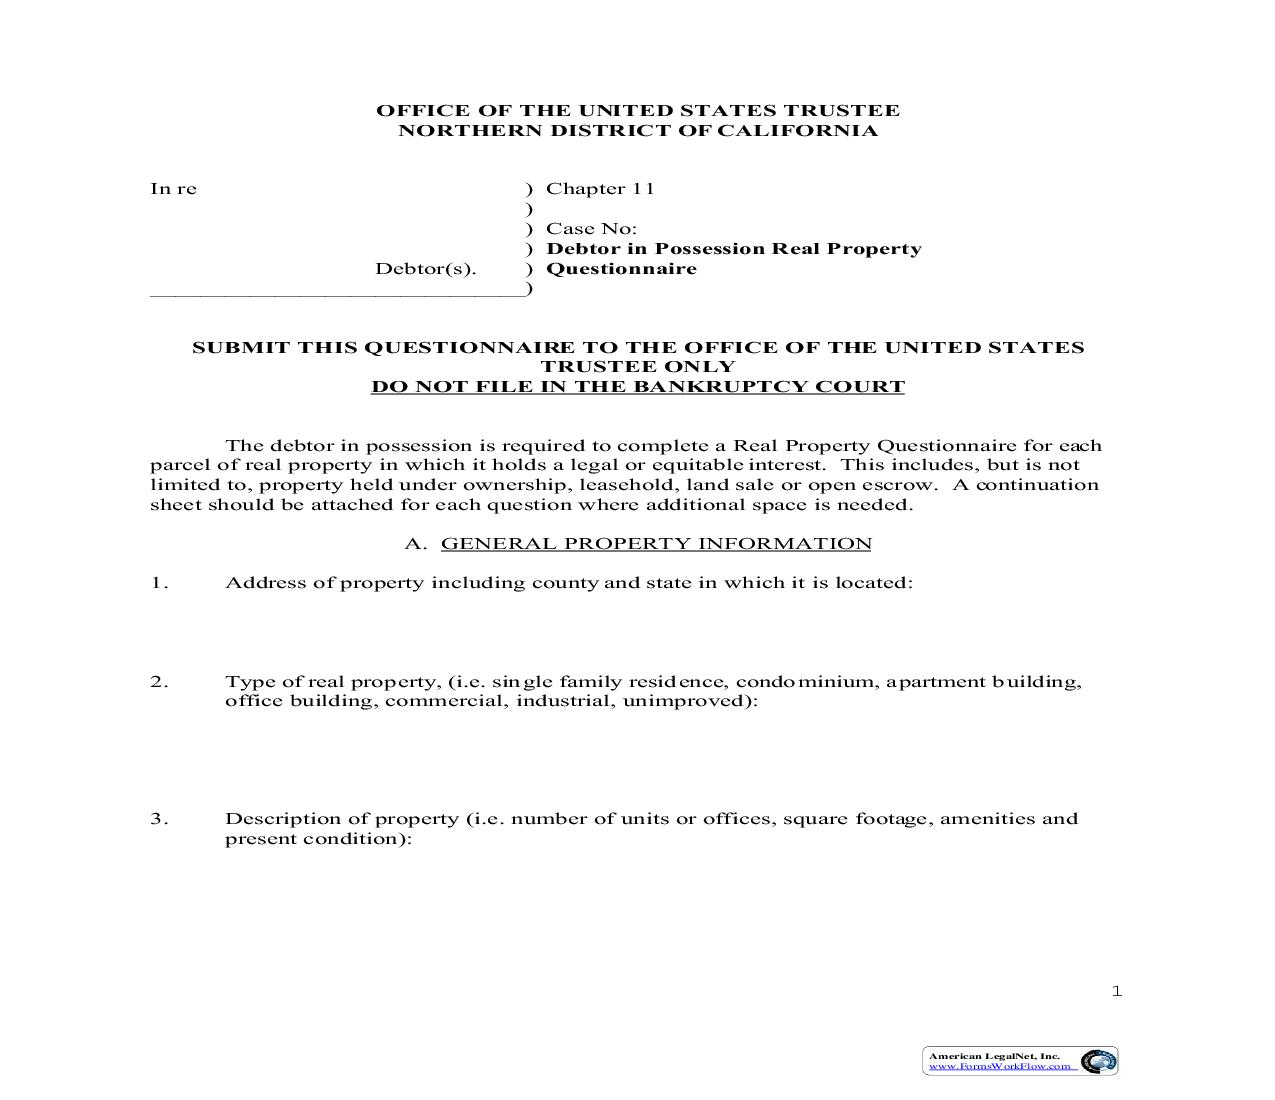 Chapter 11 Debtor In Possession Real Property Questionnaire (US Trustee Northern District)   Pdf Fpdf Doc Docx   California